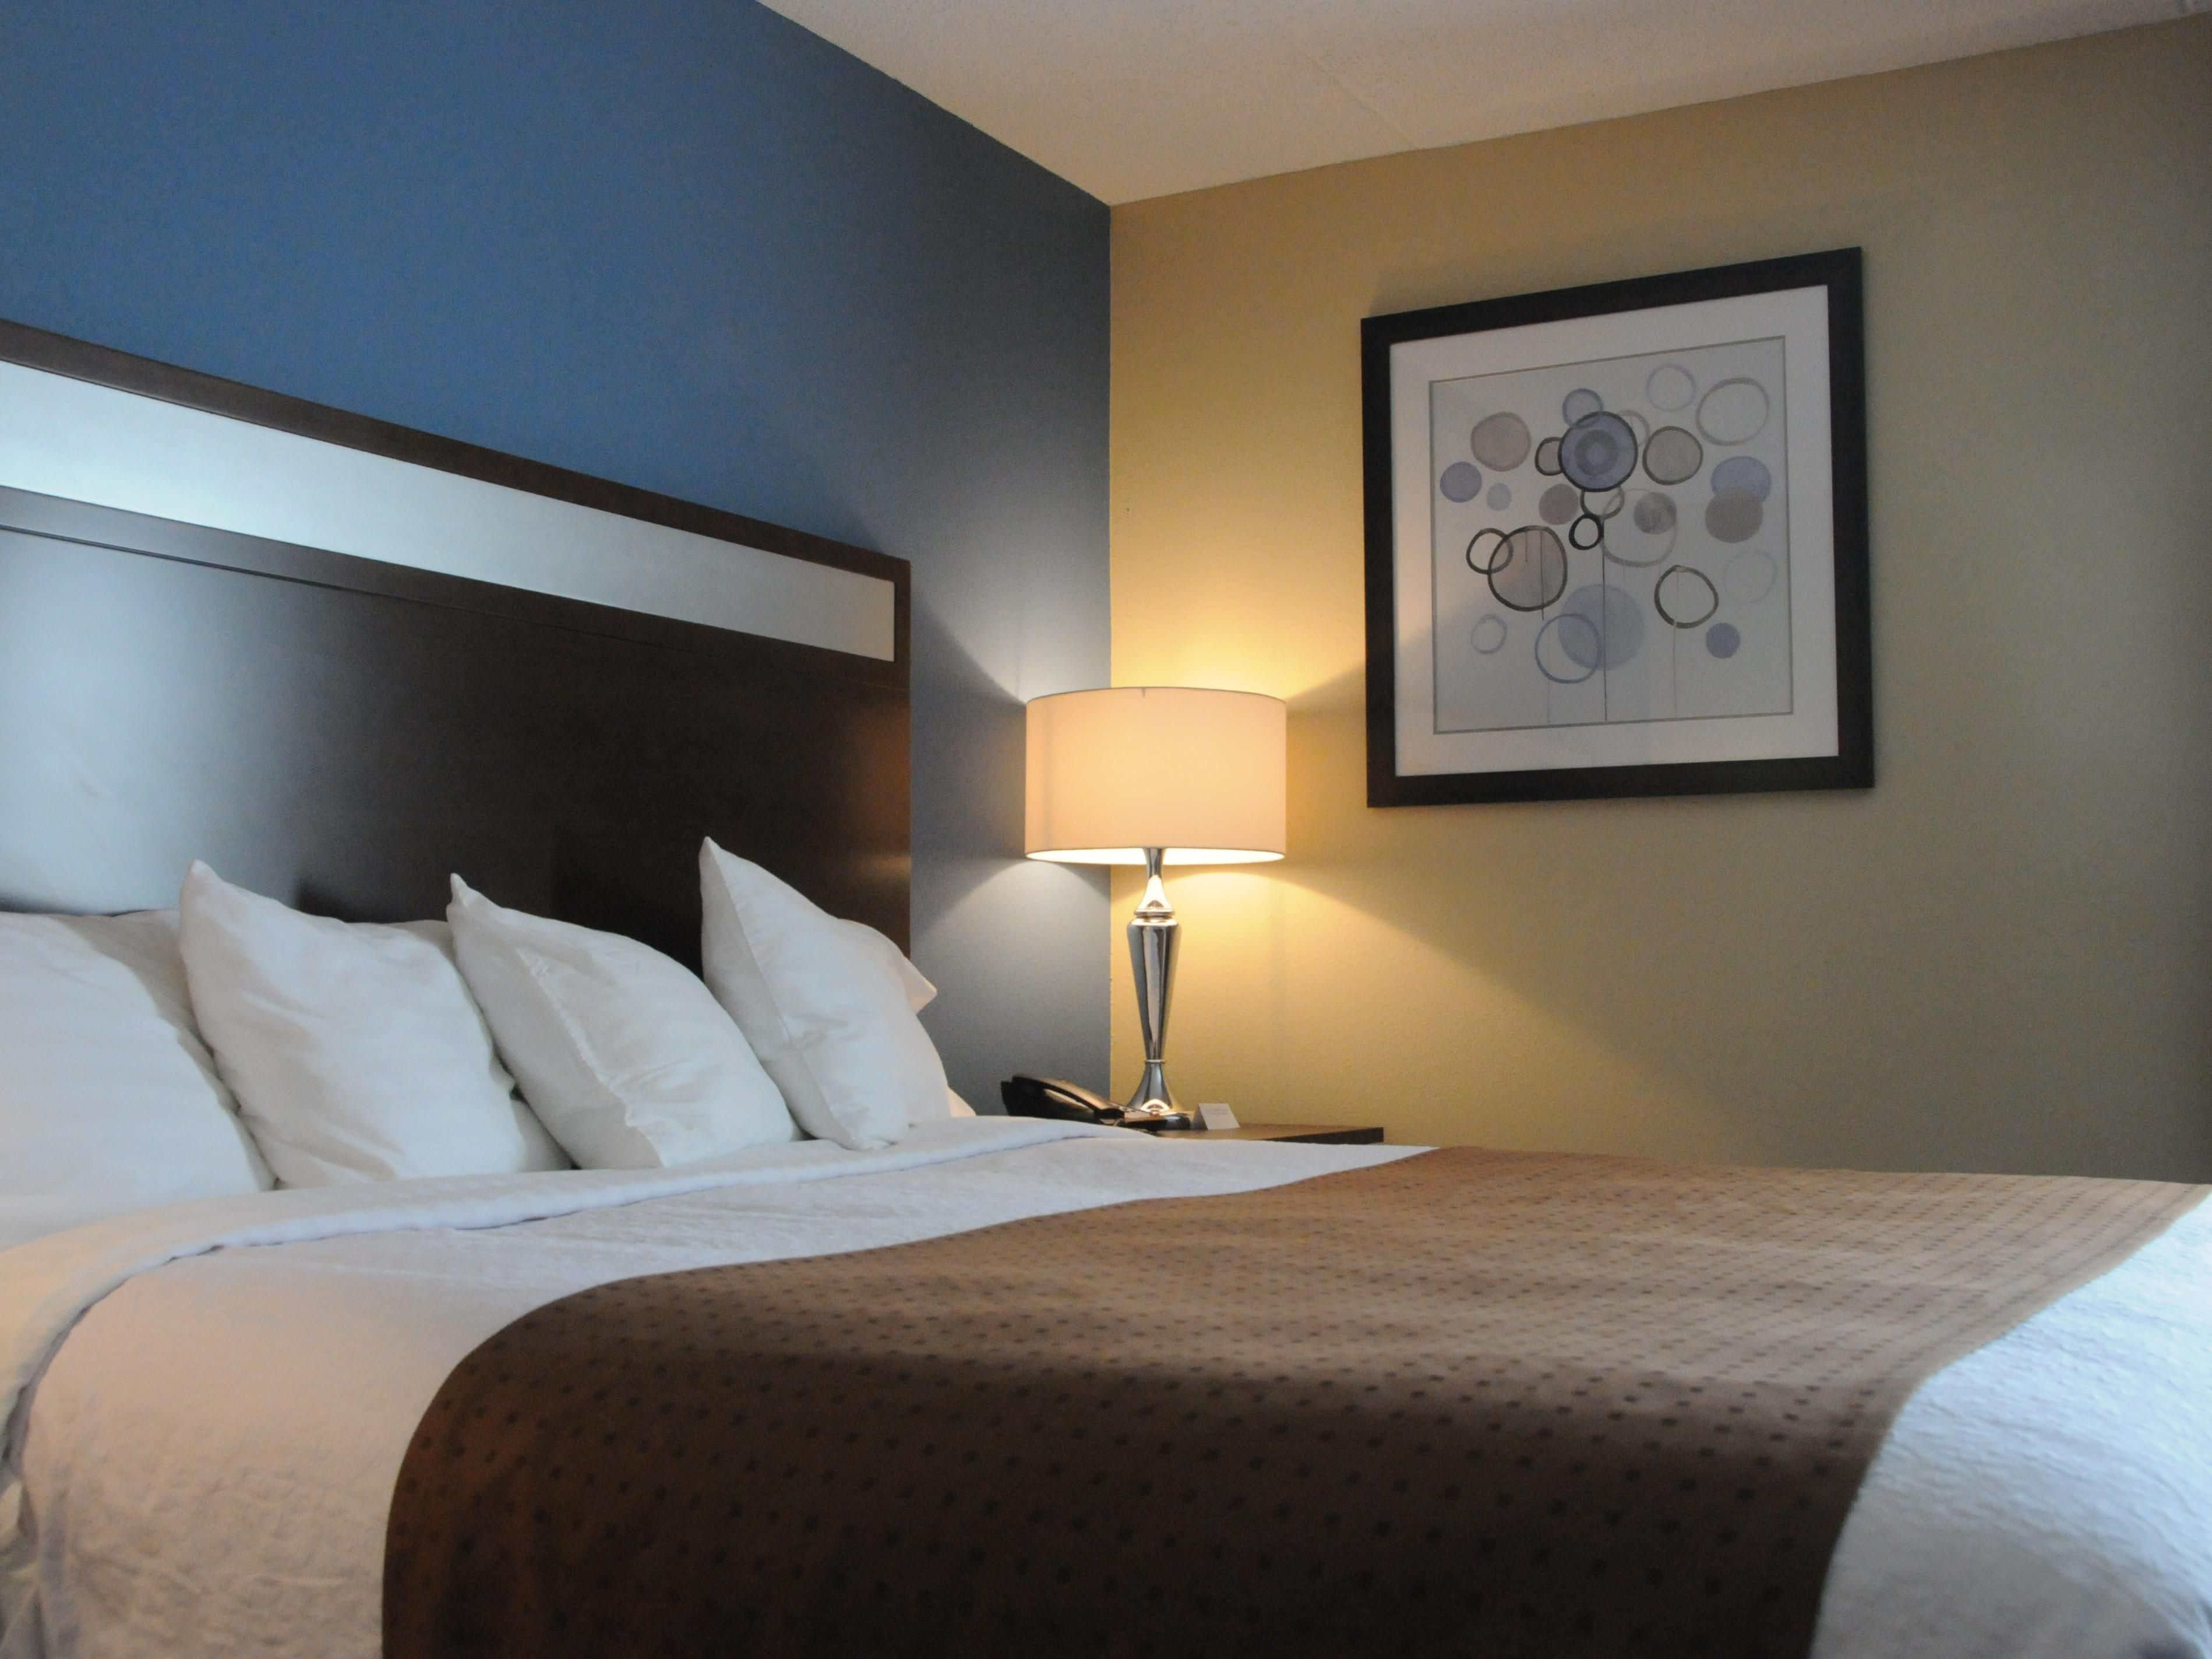 You will get a great night's sleep in our plush King Size beds!